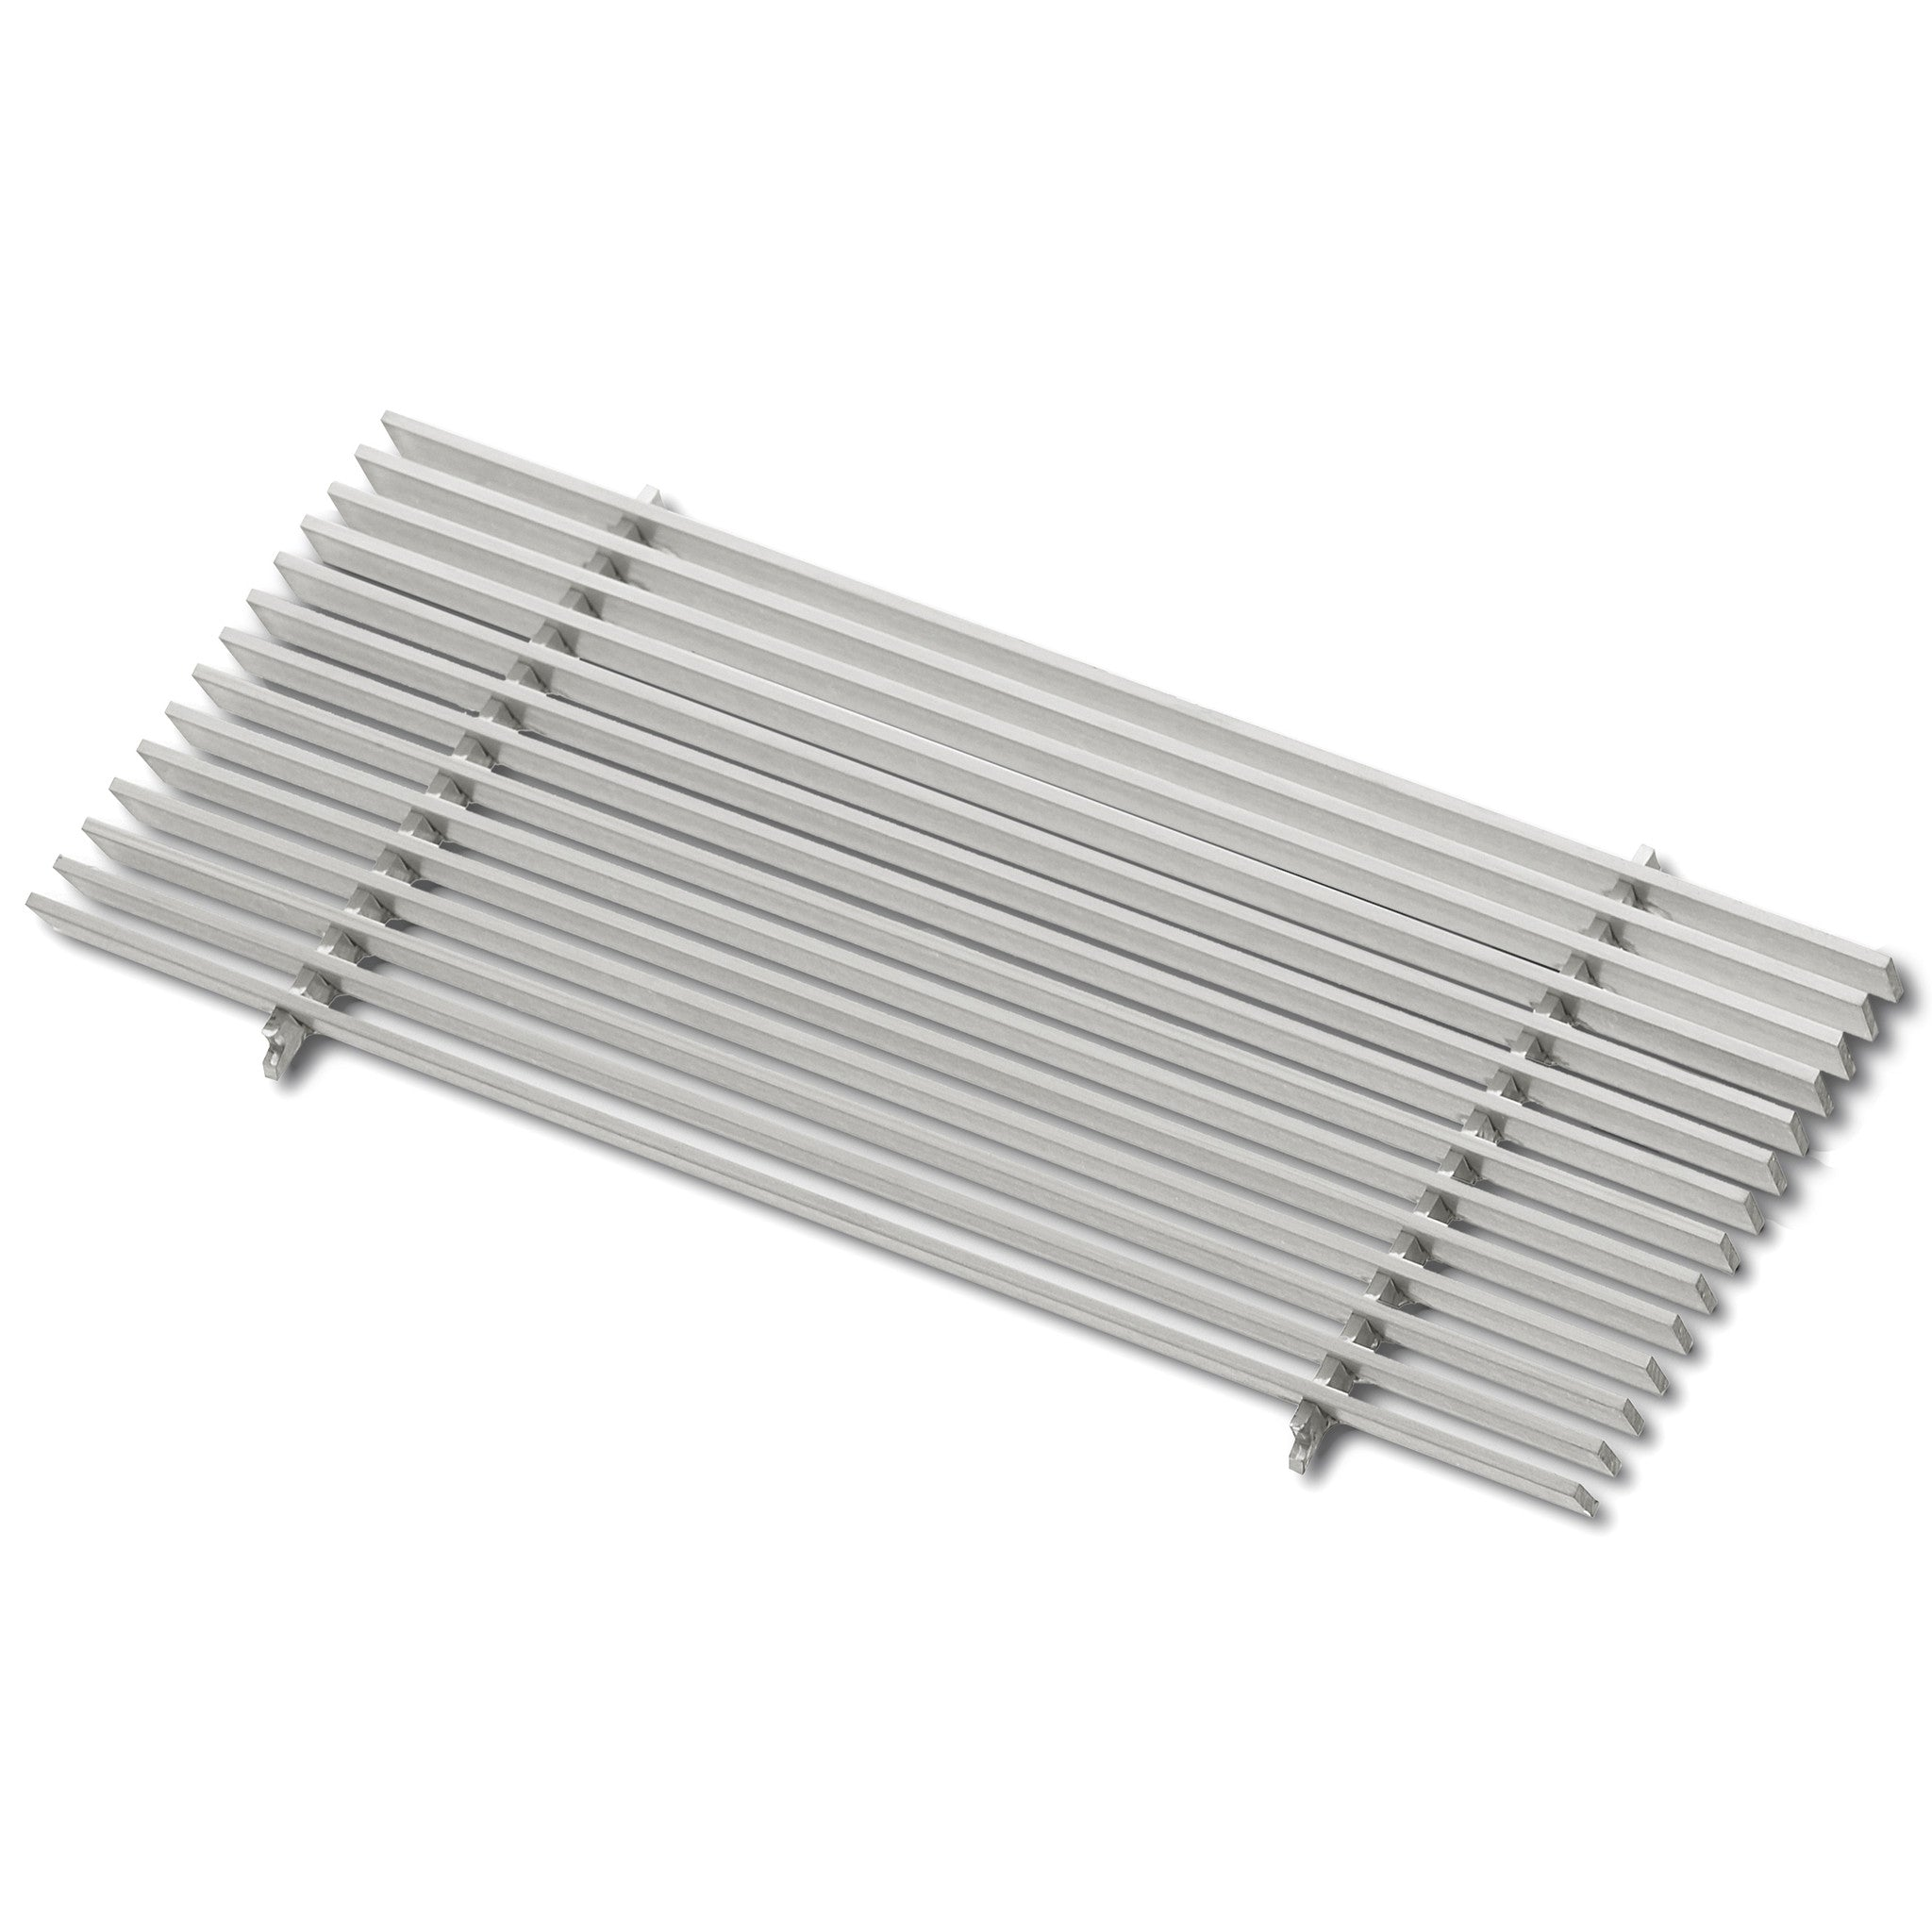 Ag10 Bar Grille Architectural Grille